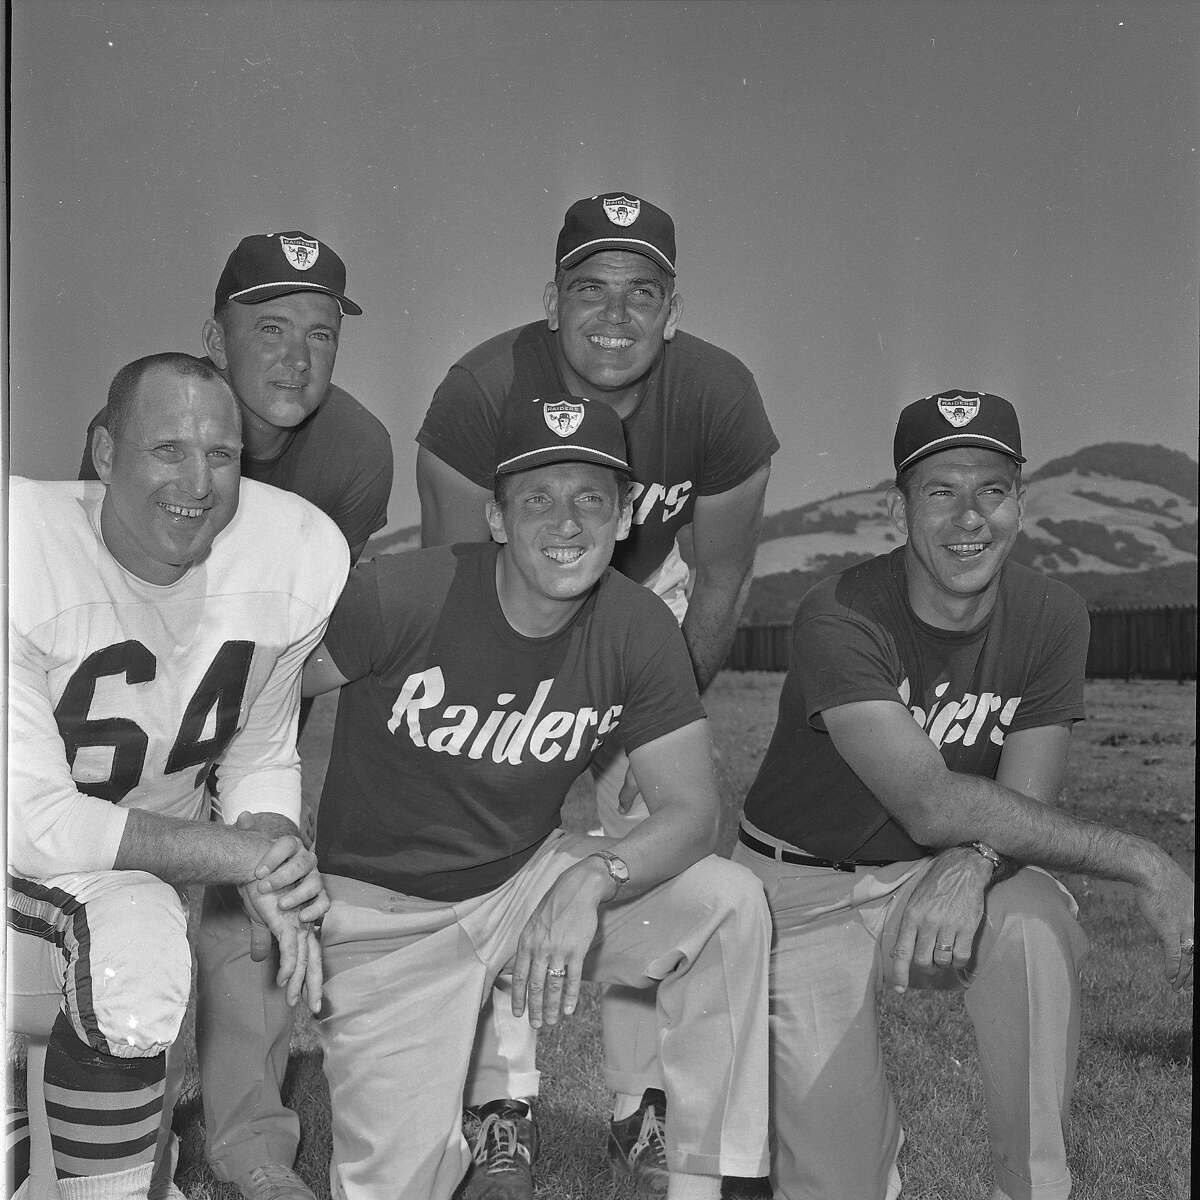 Picture Day for the the 1963 Oakland Raiders, the year Al Davis (bottom row, center) would take over as head coach.